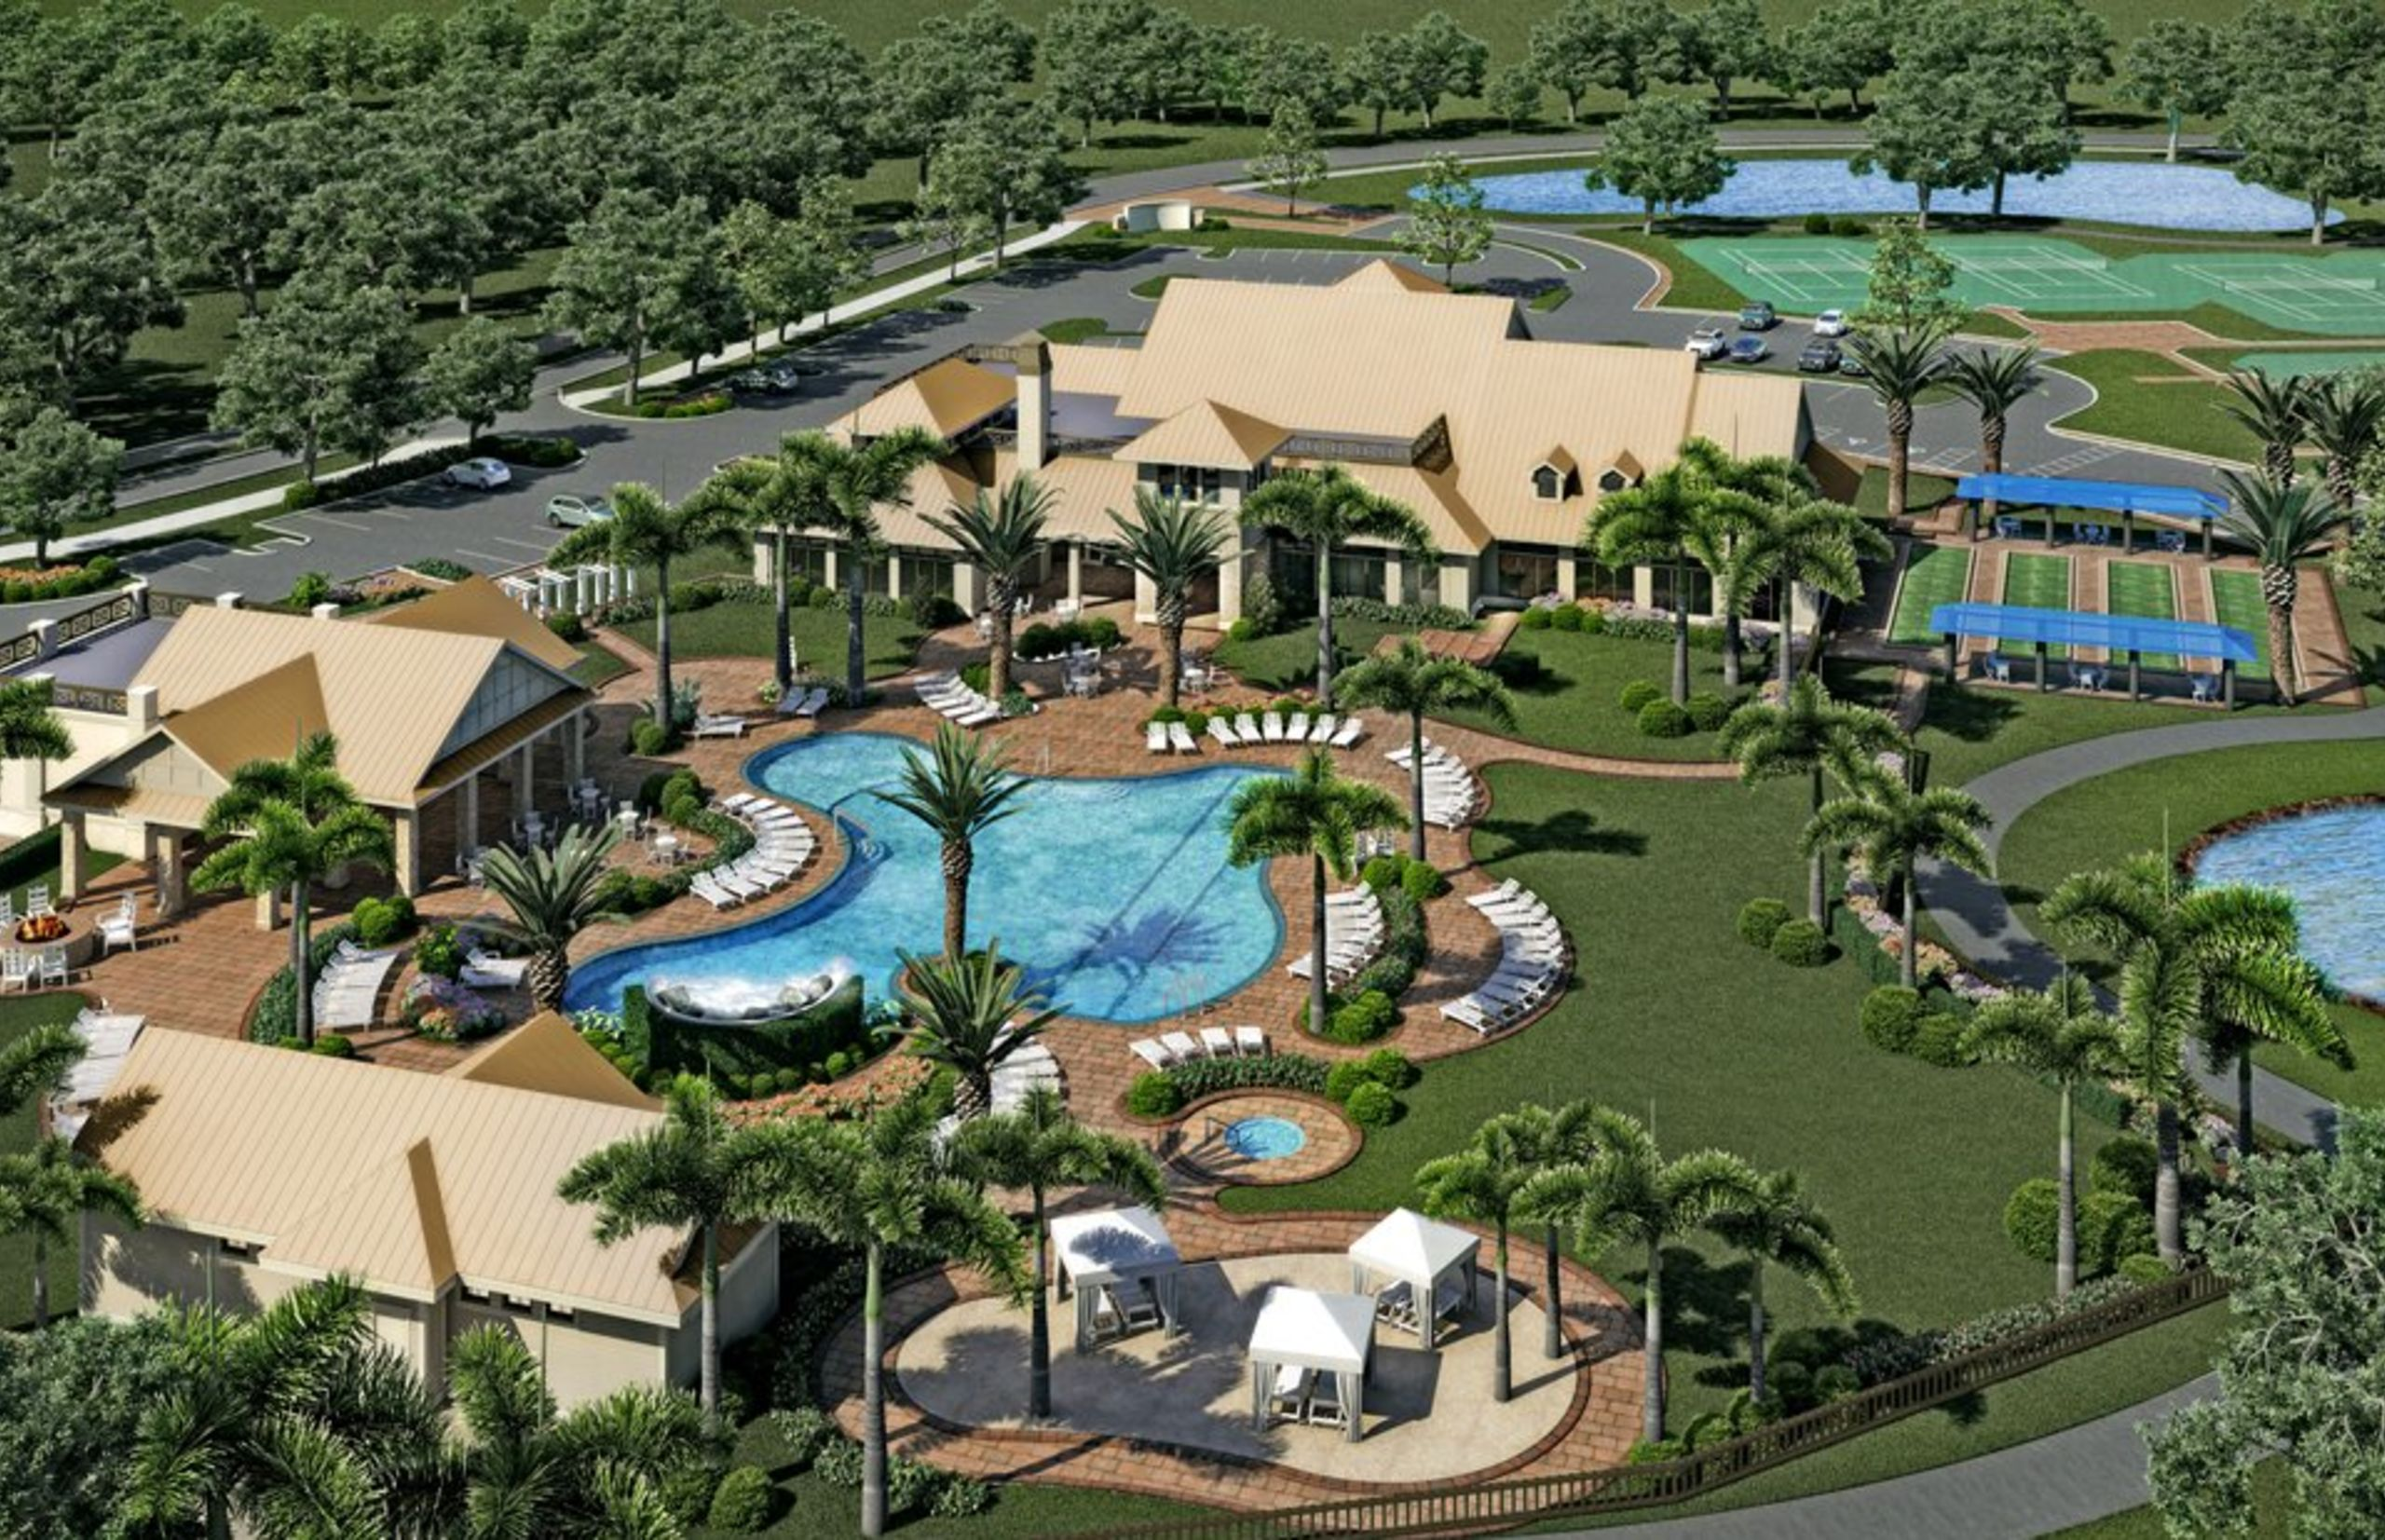 Winding Cypress Amenity Center Rendering